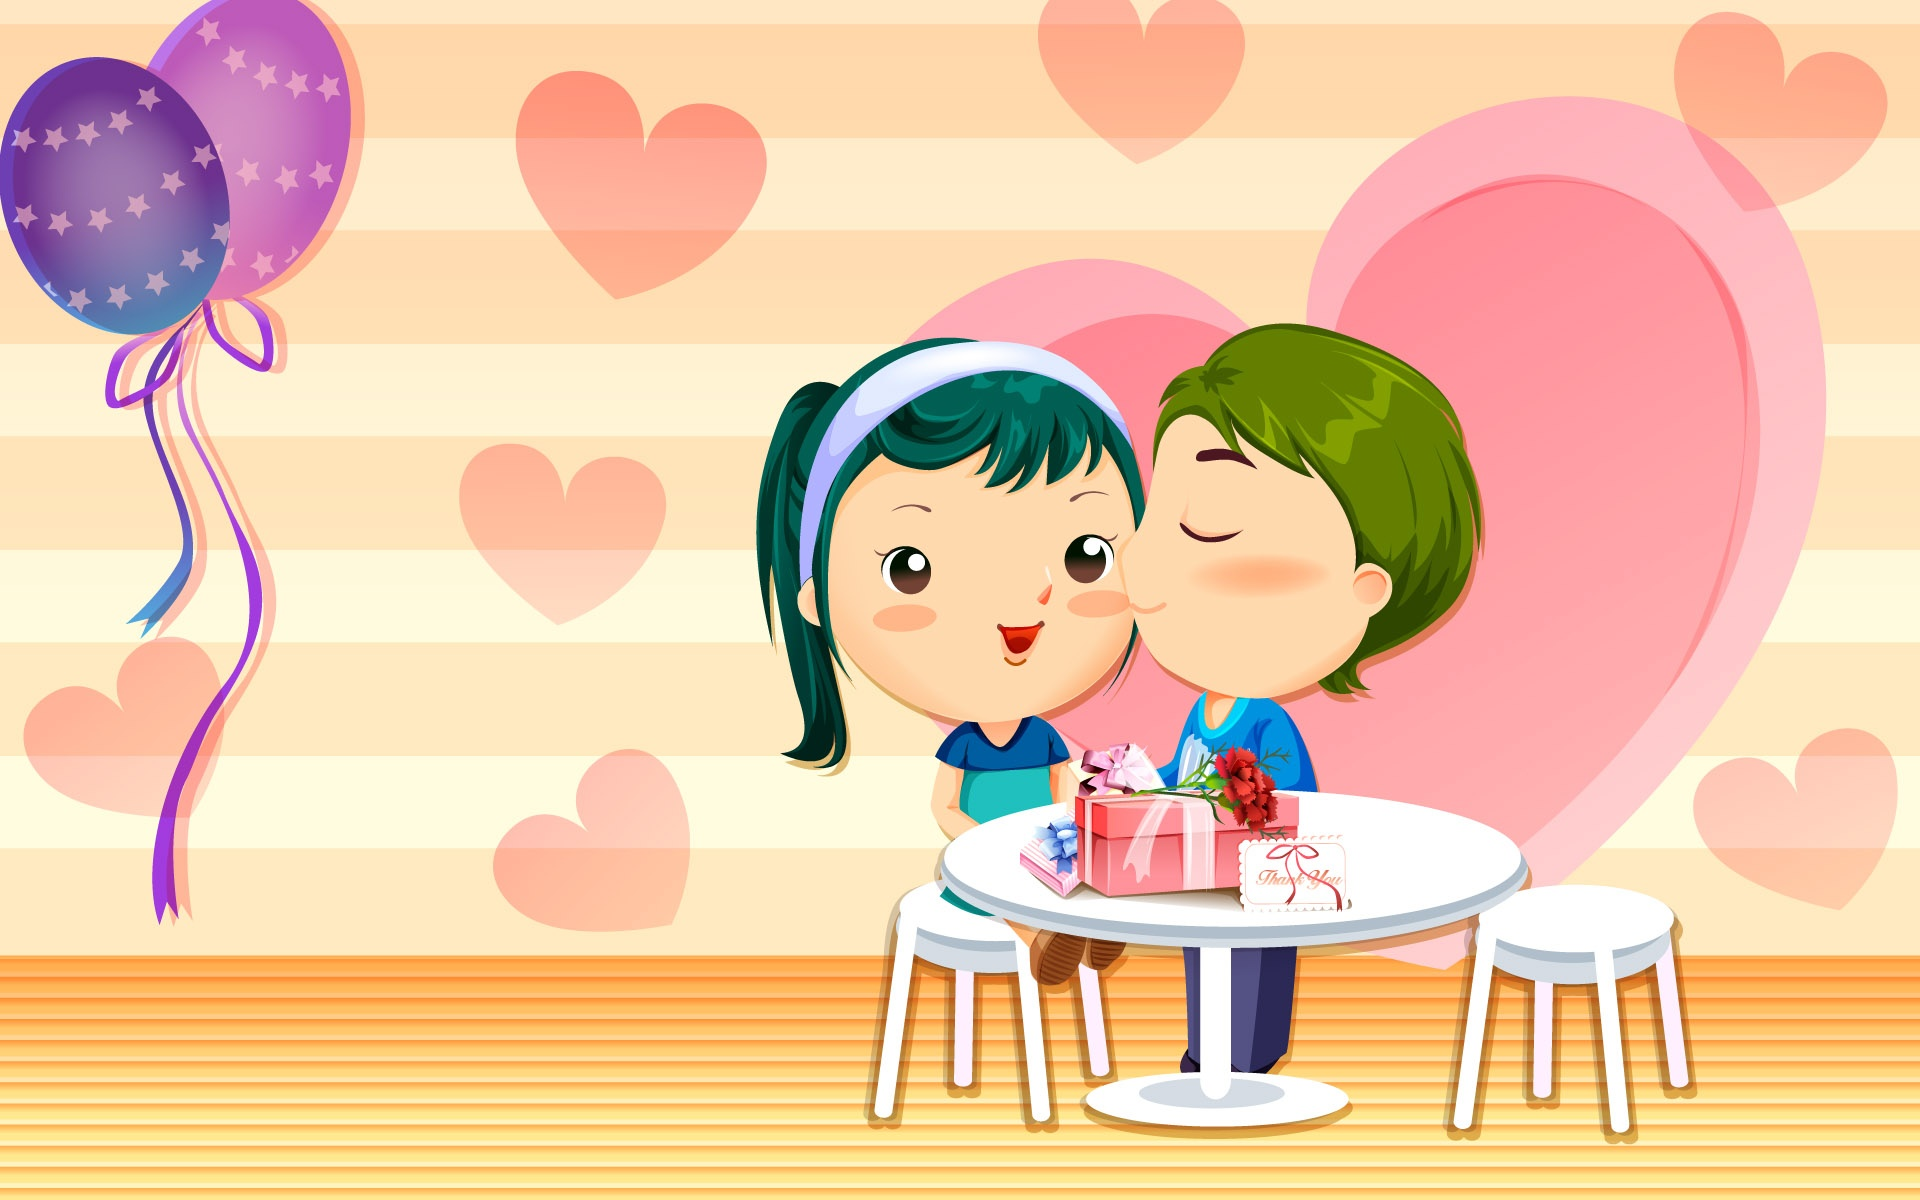 Valentine 39 s day cartoon wallpapers 1920x1200 365451 - Cartoon valentine wallpaper ...